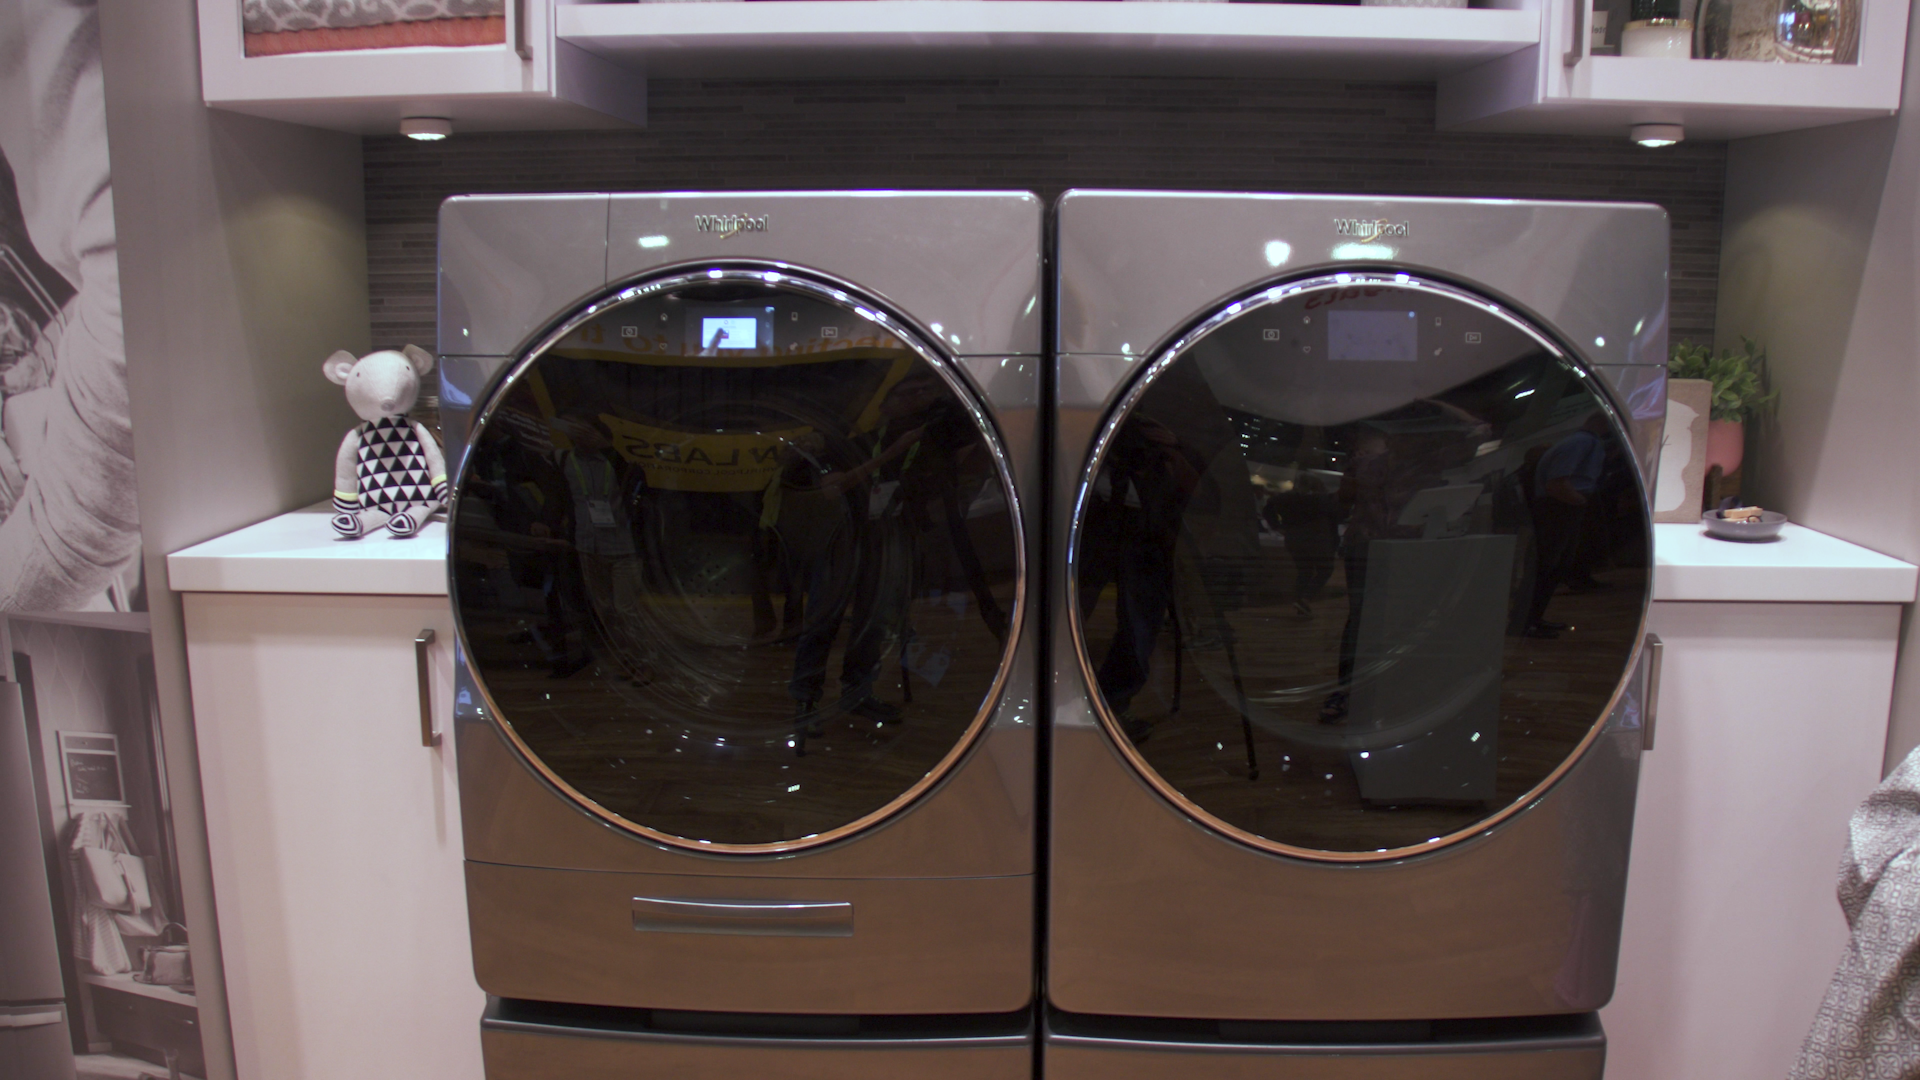 whirlpool washer still2   It's time to clean your washing machine. Here's how to get rid of smelly mold and mildew - CNET   The Paradise